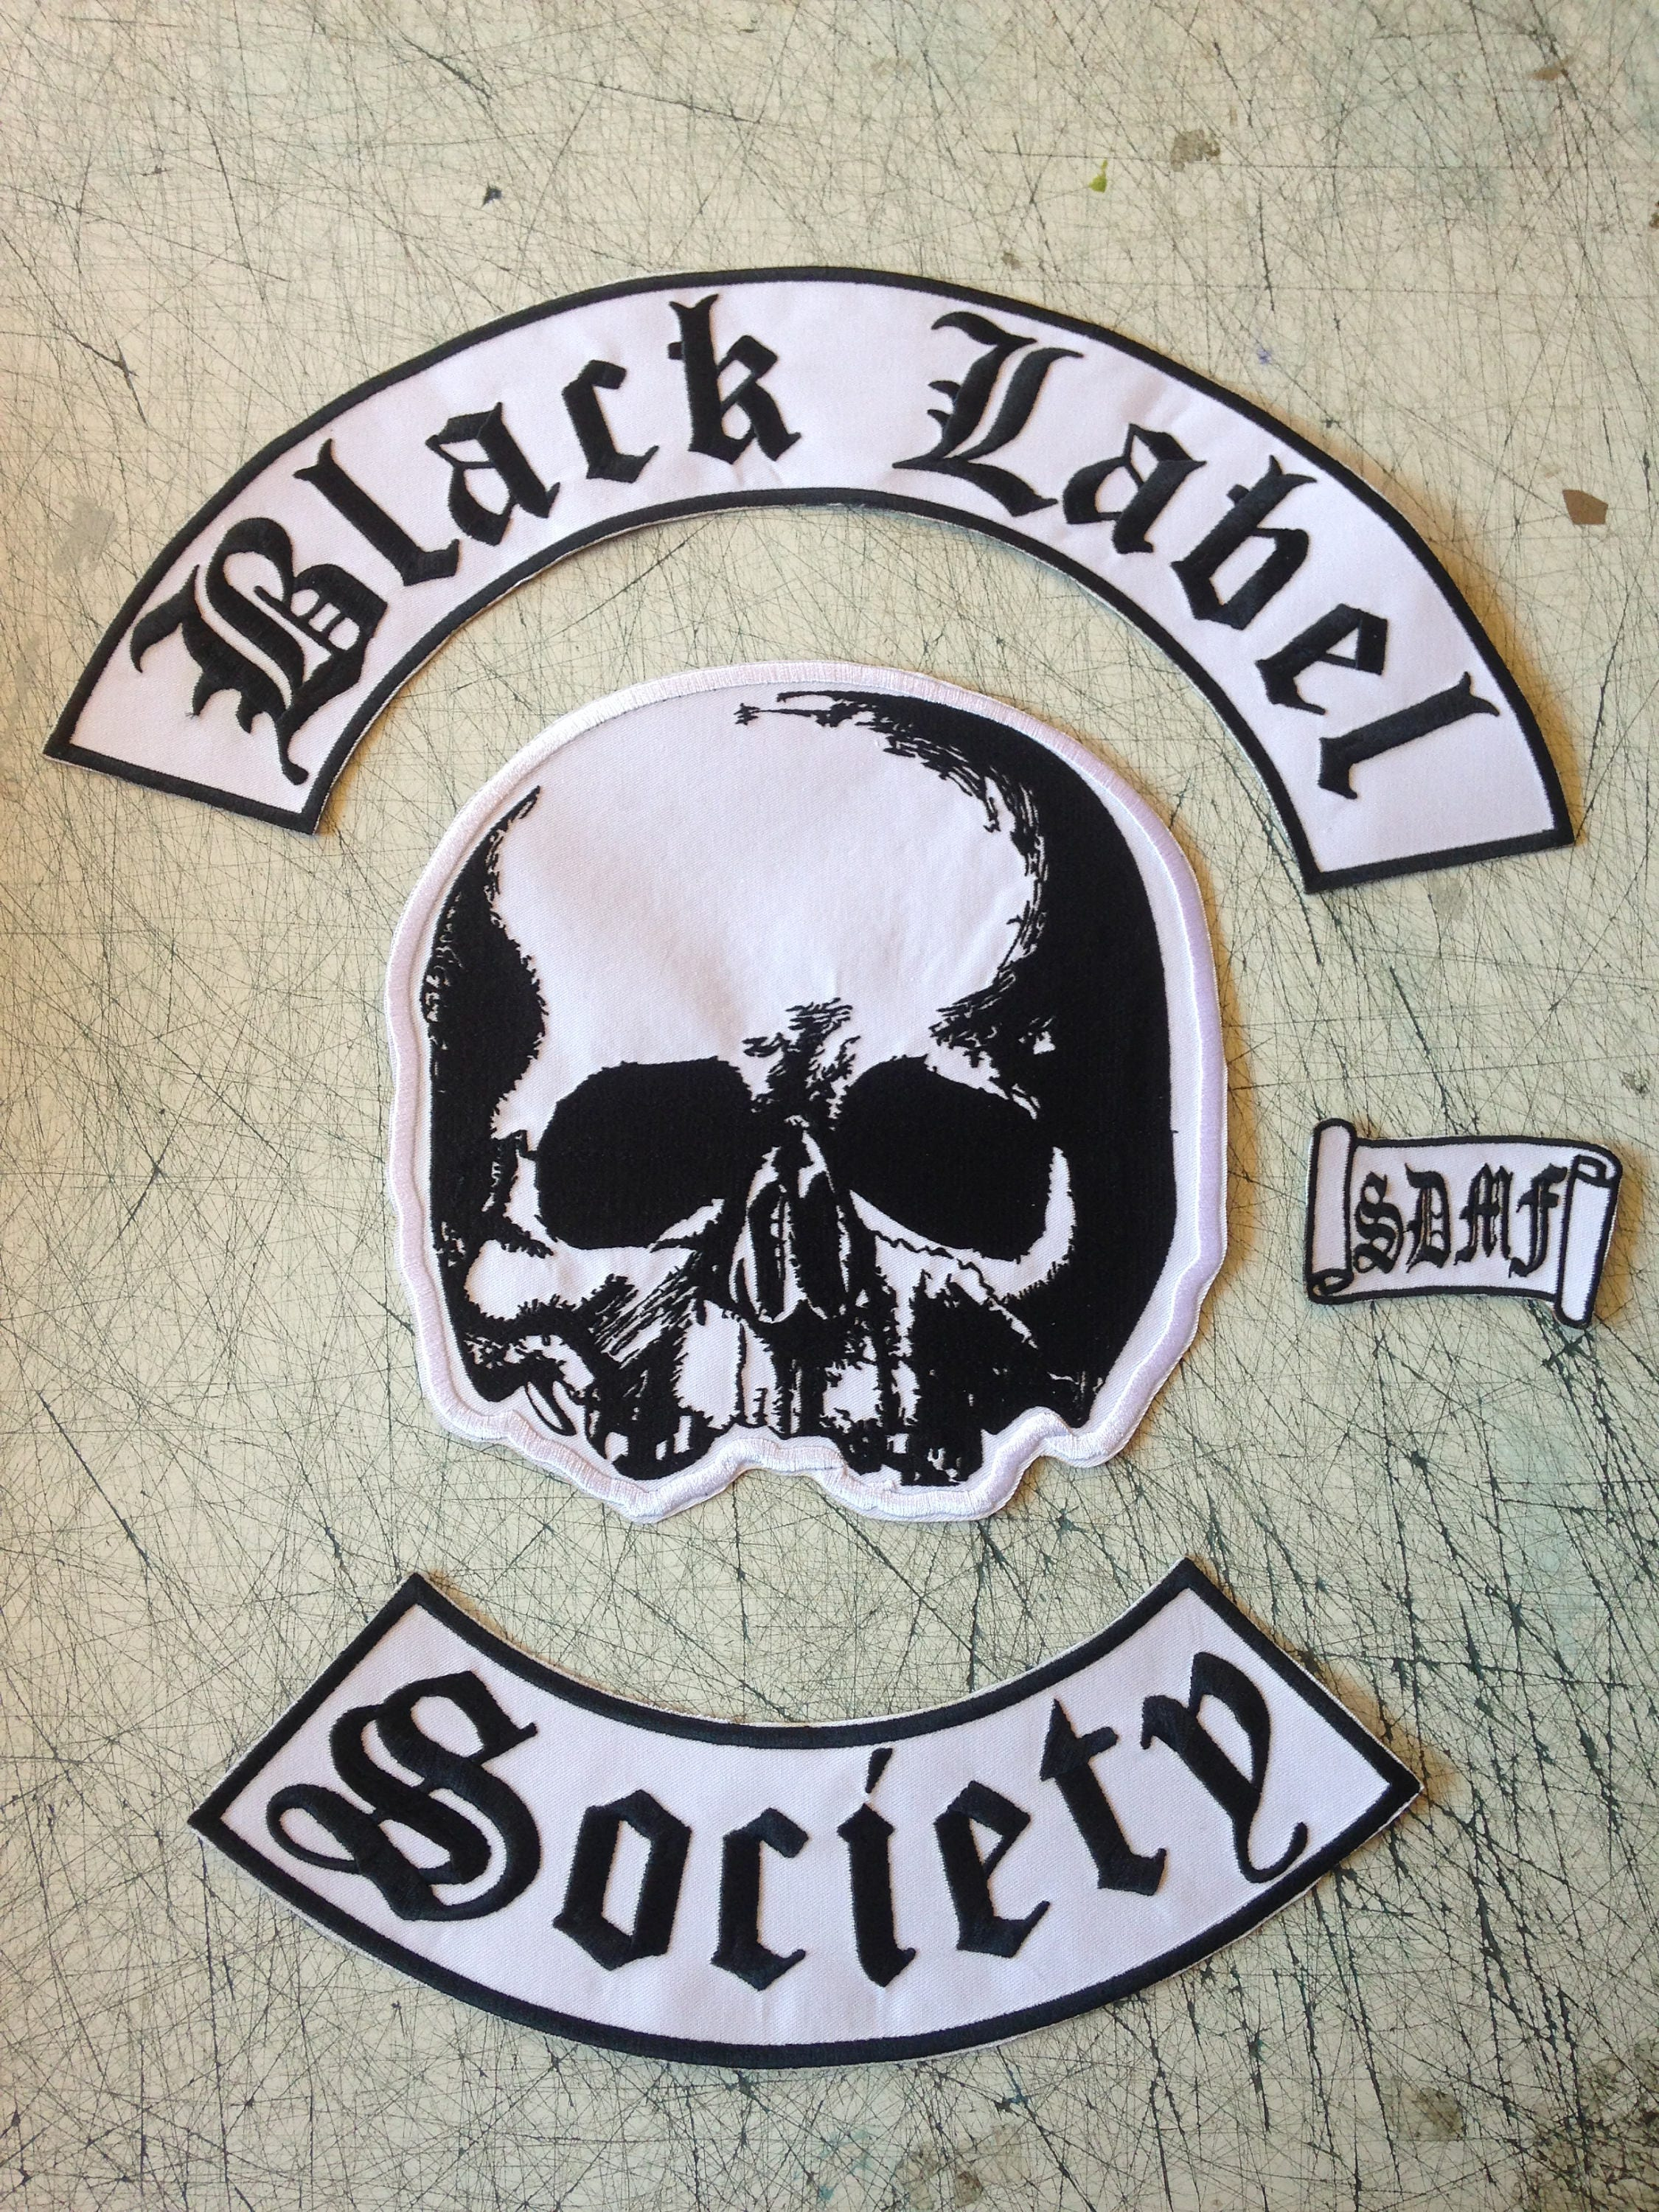 Balck Label Society : black label society patch etsy ~ Hamham.info Haus und Dekorationen